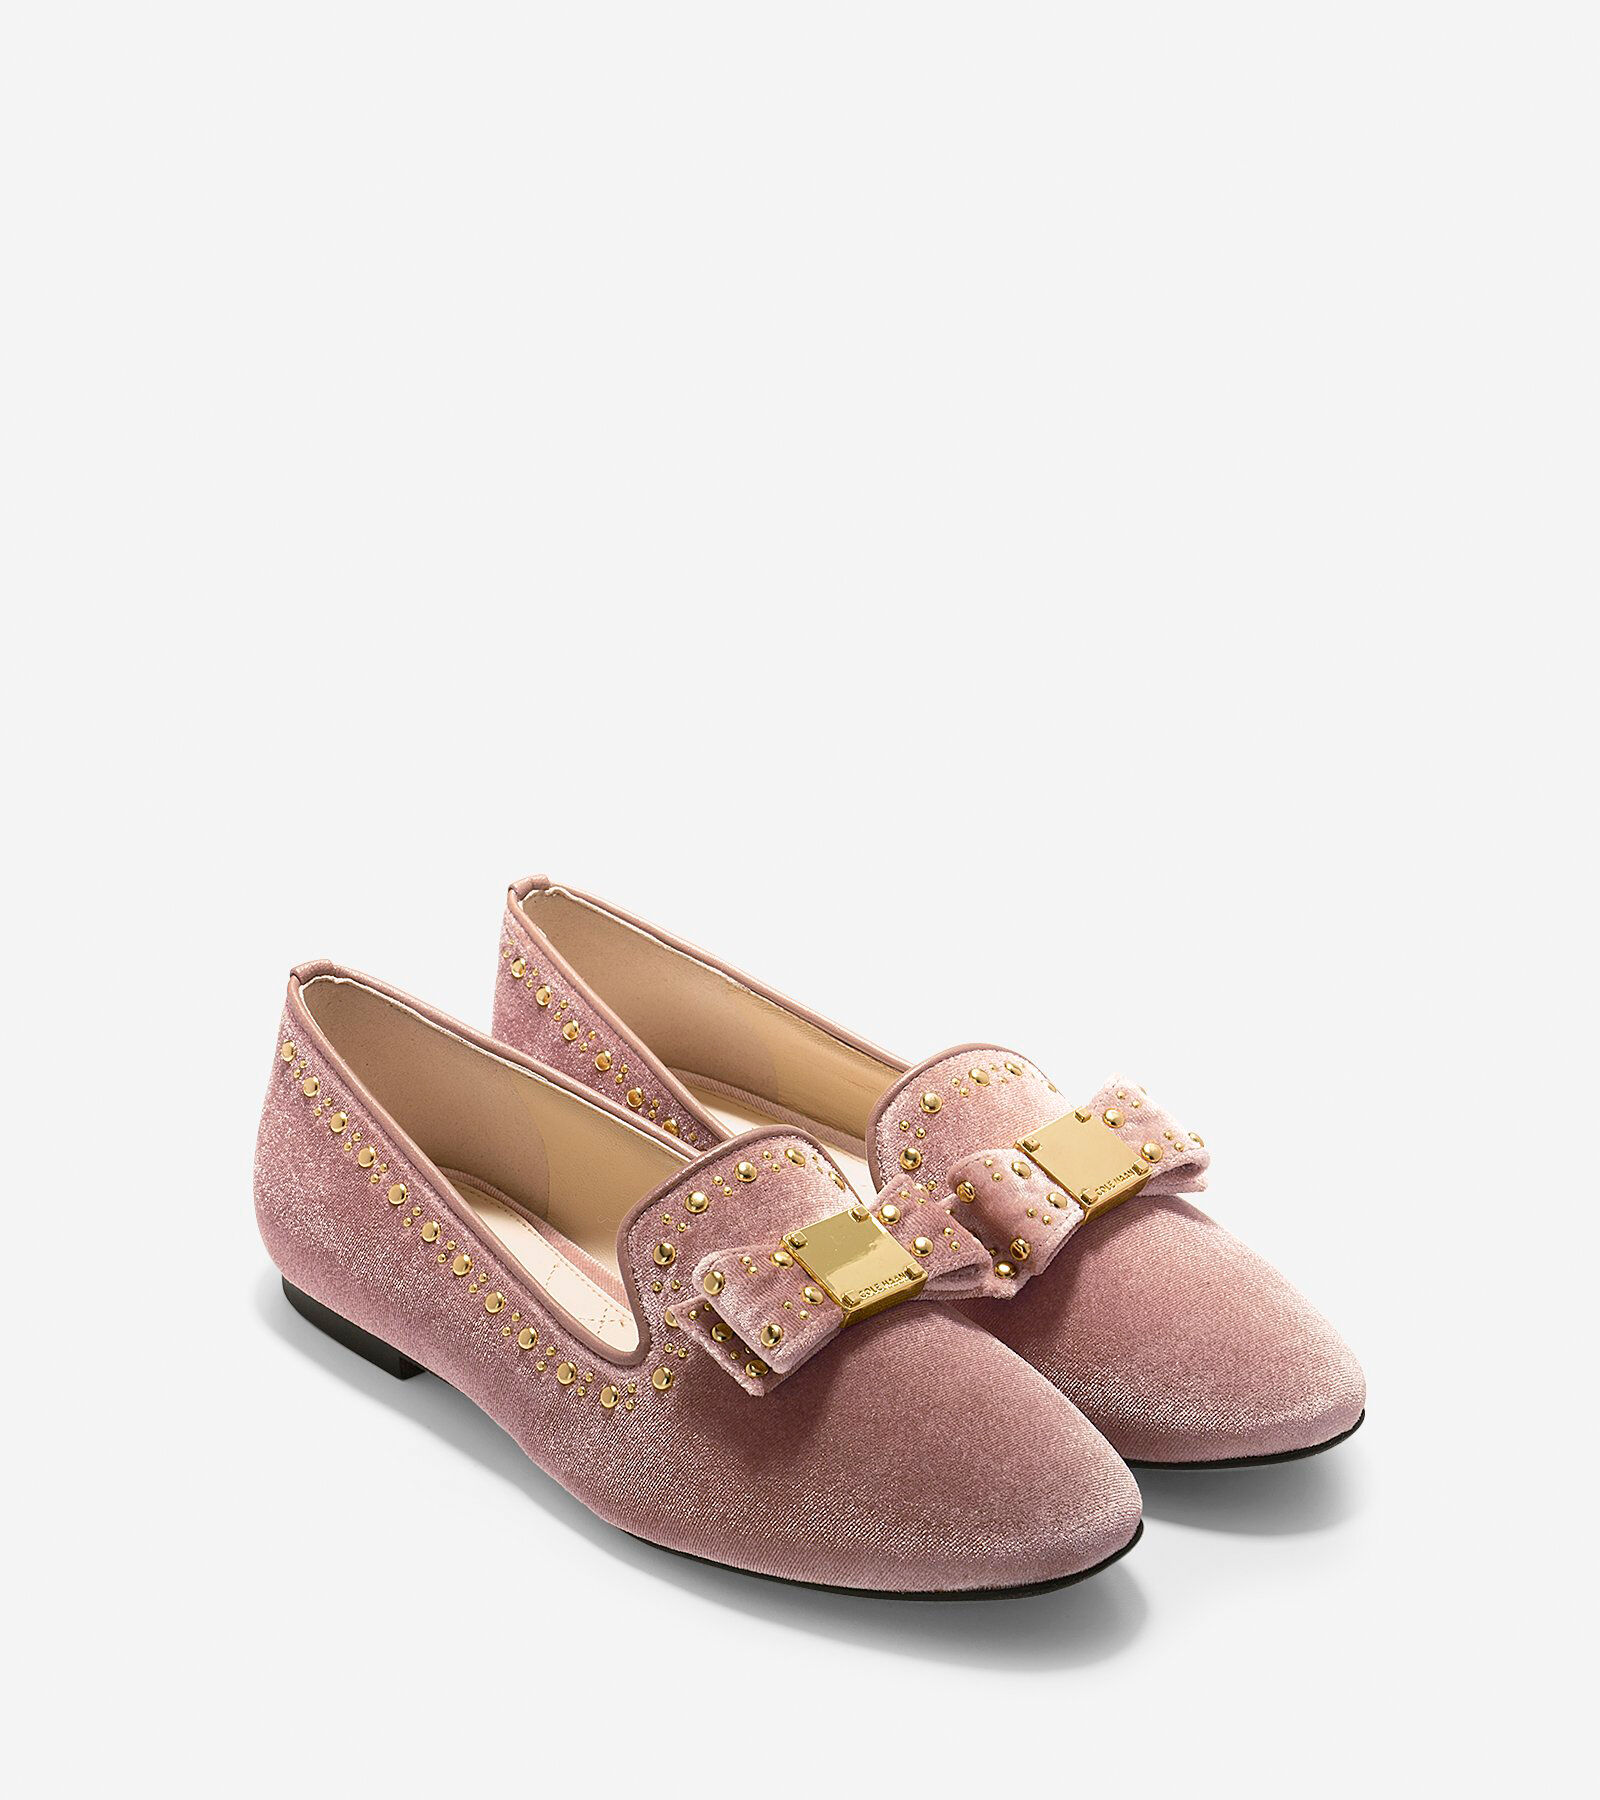 Cole Haan Women's Tali Bow Studded Loafers zTMIM